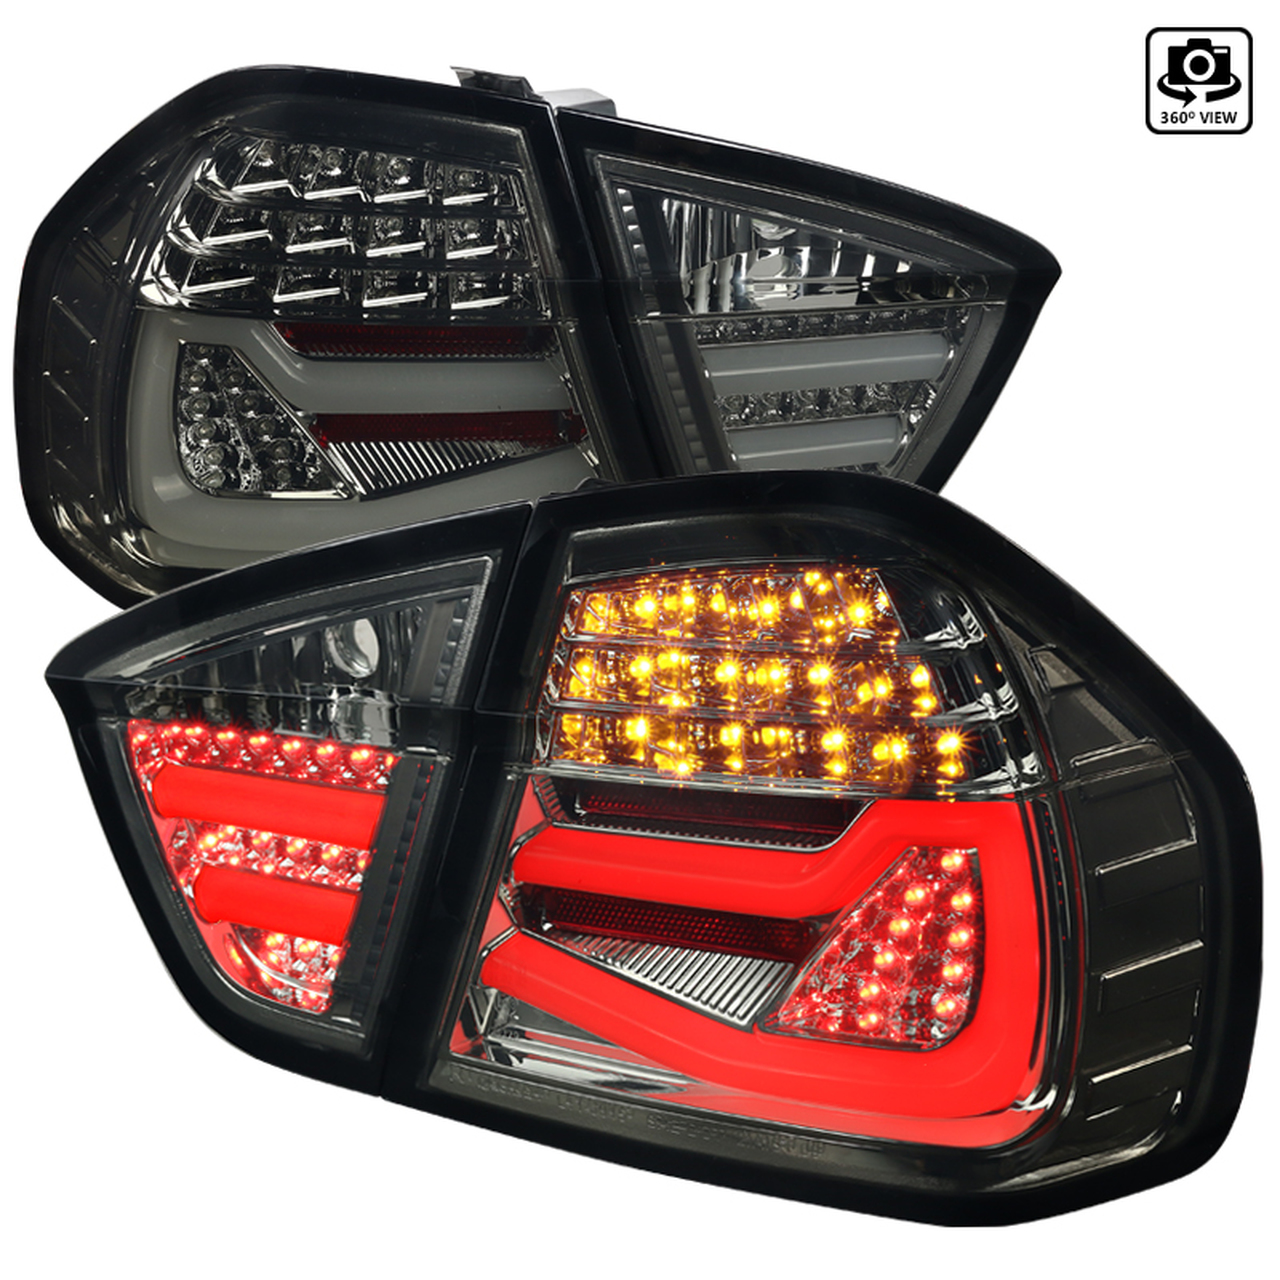 Spec-D Tuning Smoke LED Tail Lights - Spec-D Tuning LT-E9005GLED-TM